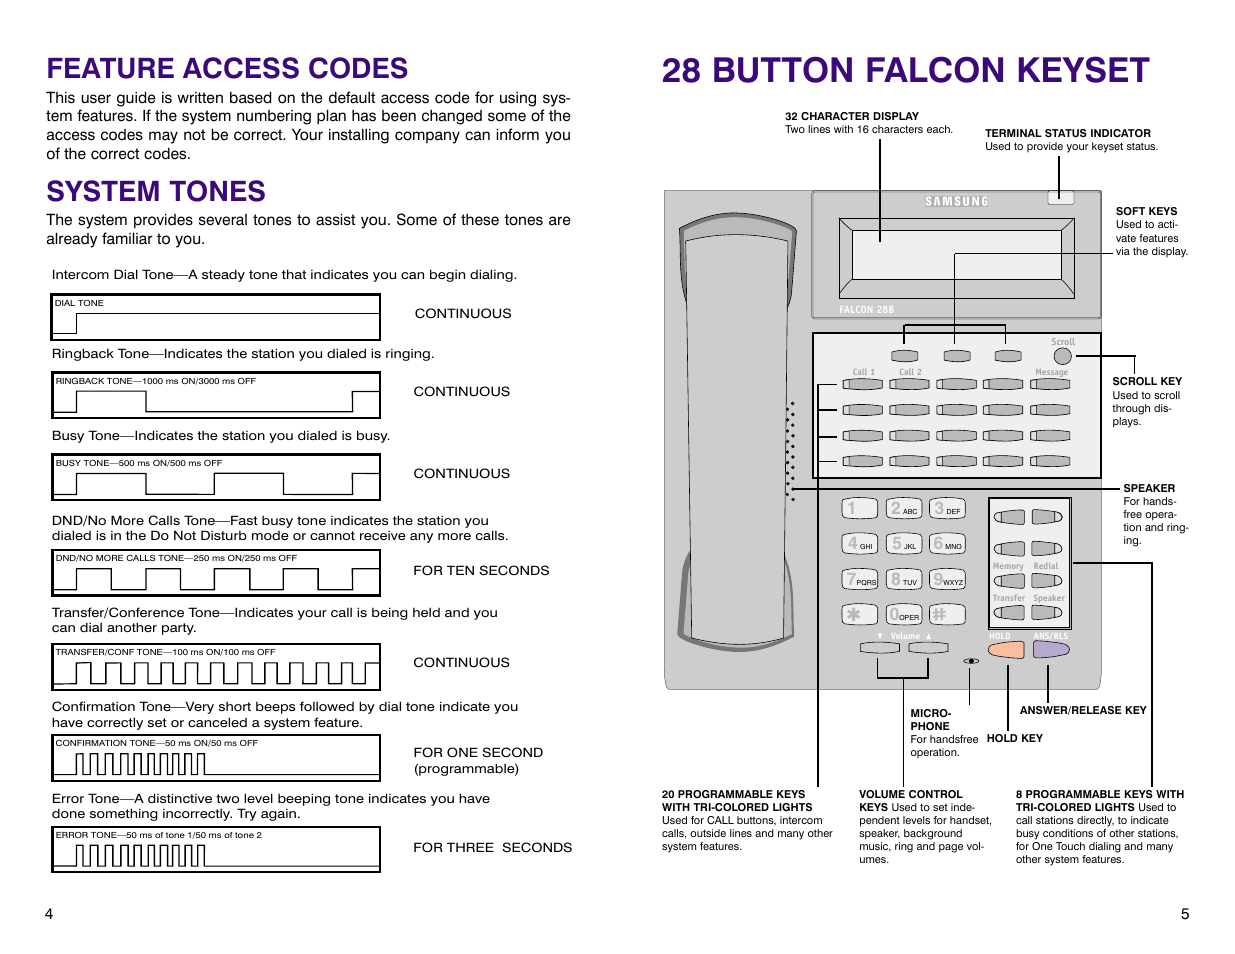 28 button falcon keyset, Feature access codes, System tones